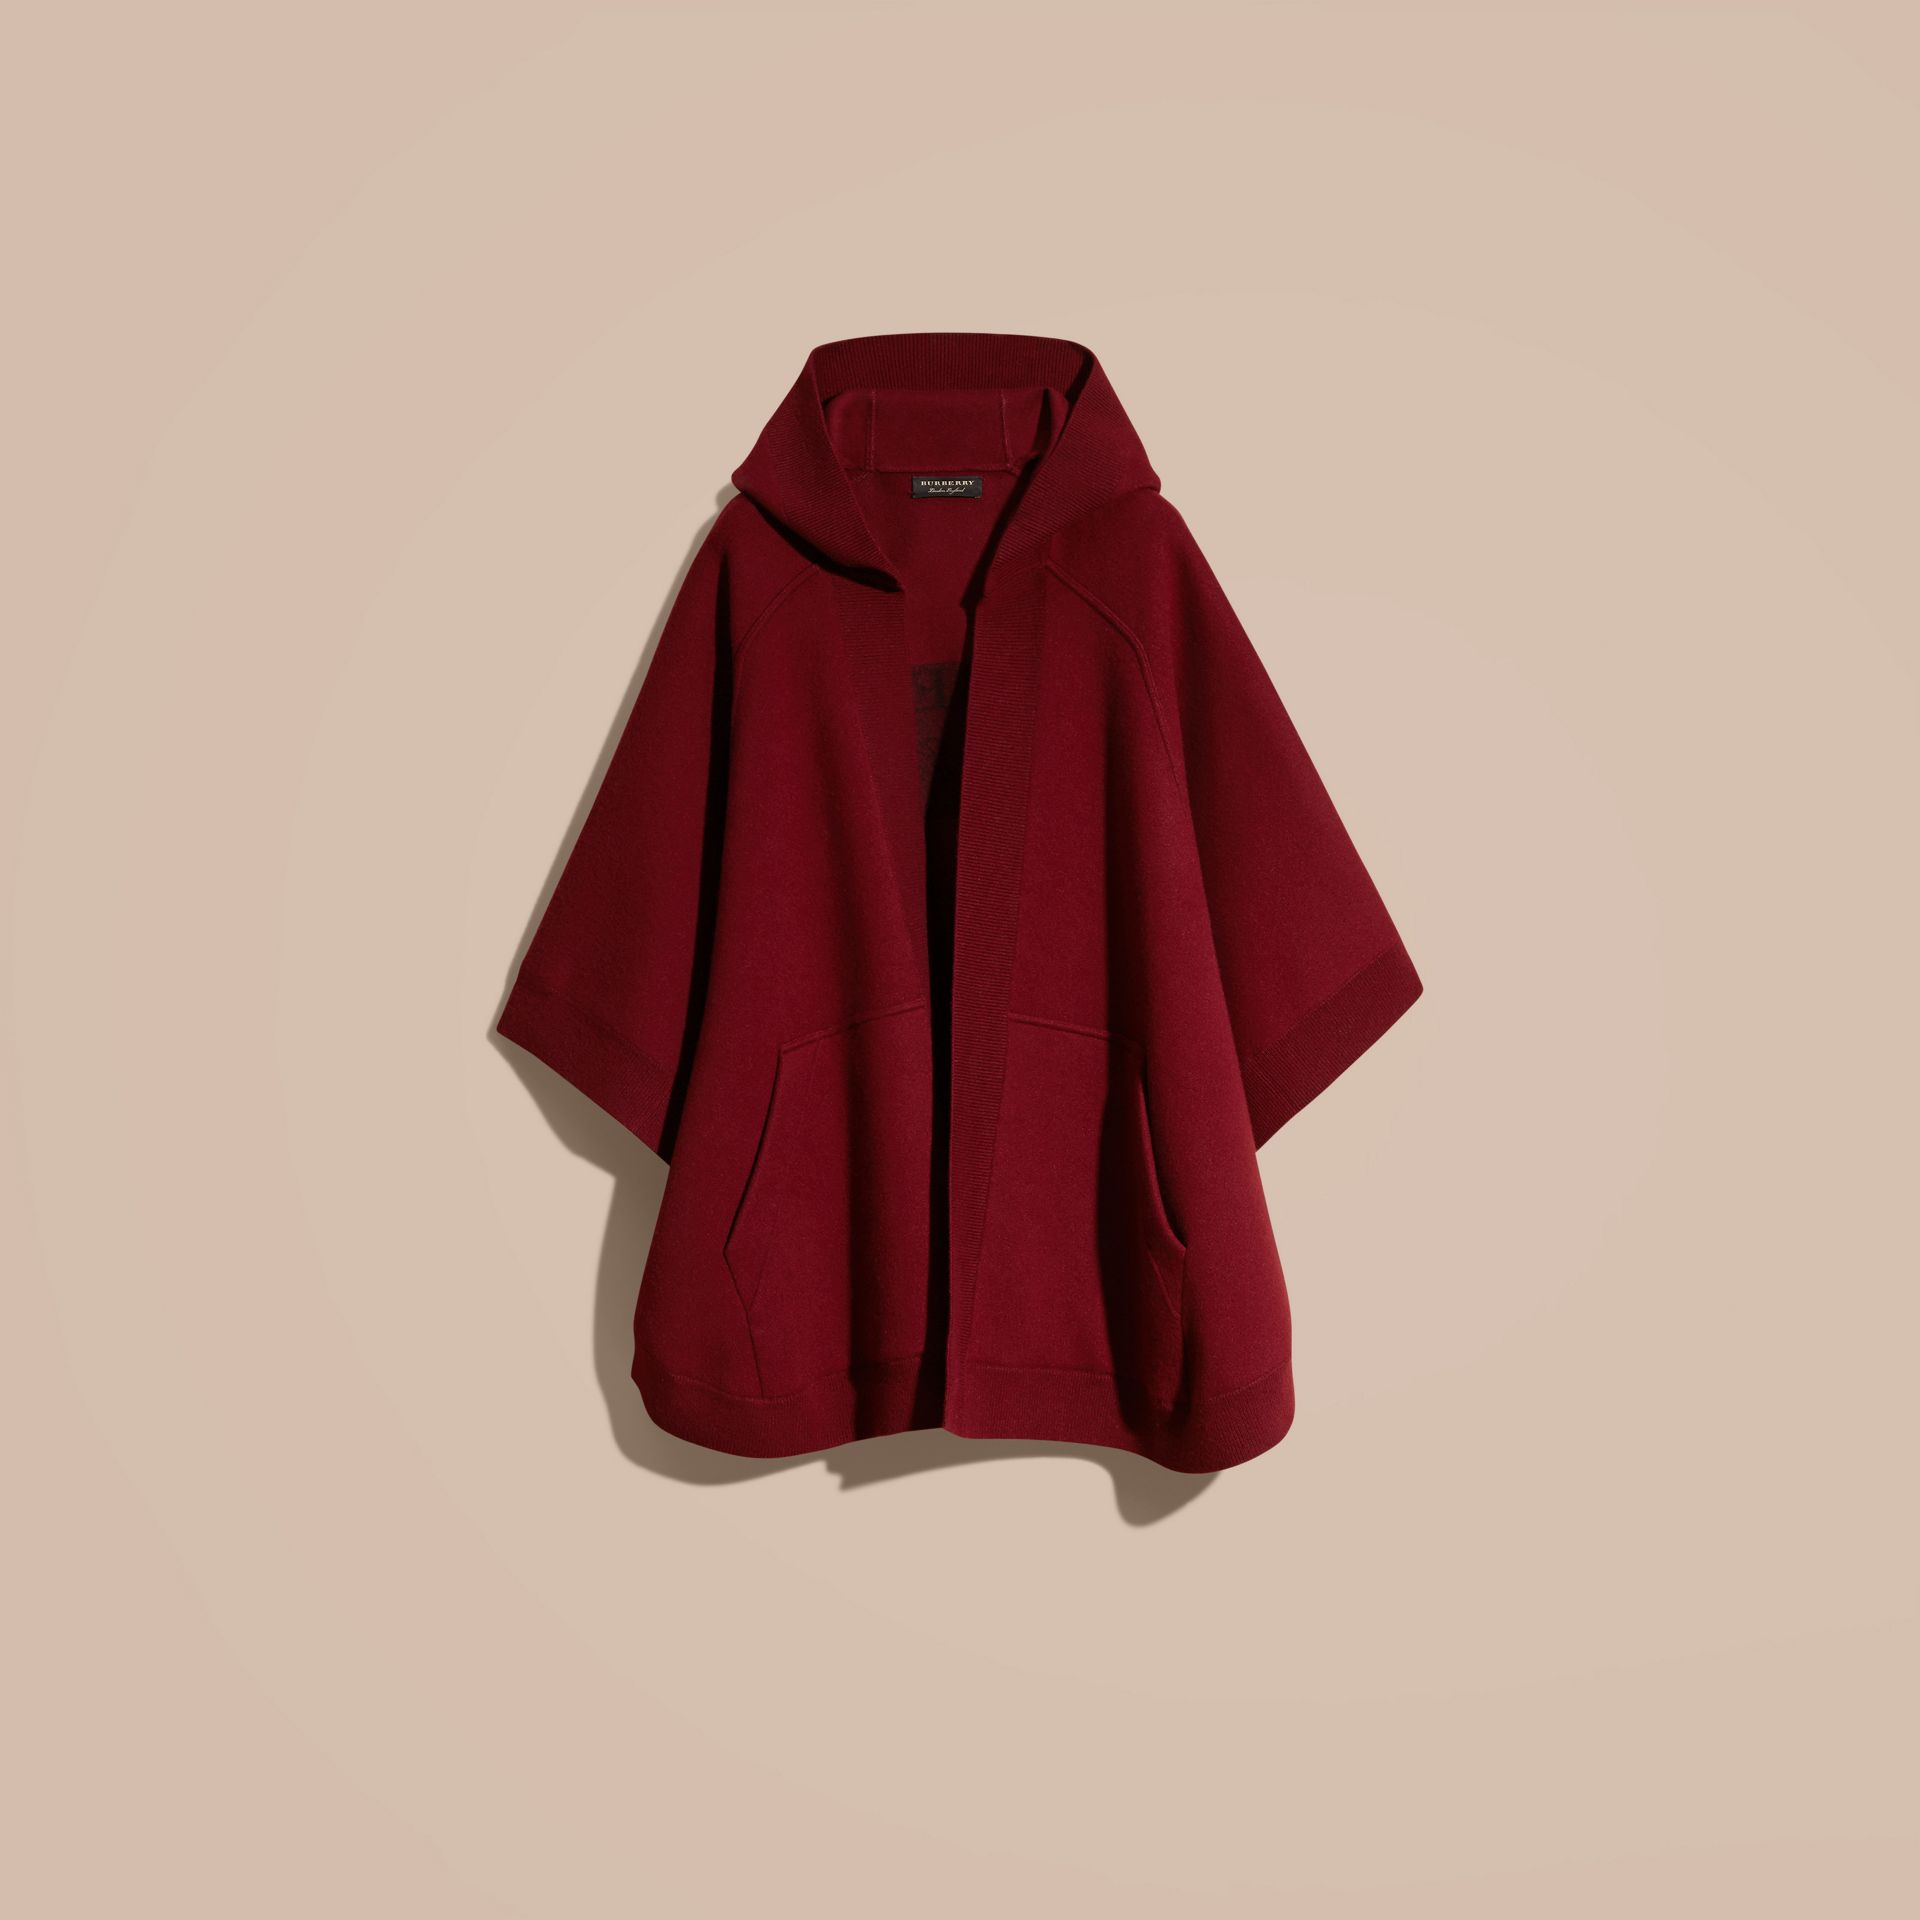 Wool Cashmere Blend Hooded Poncho in Deep Red - Women | Burberry Australia - gallery image 4